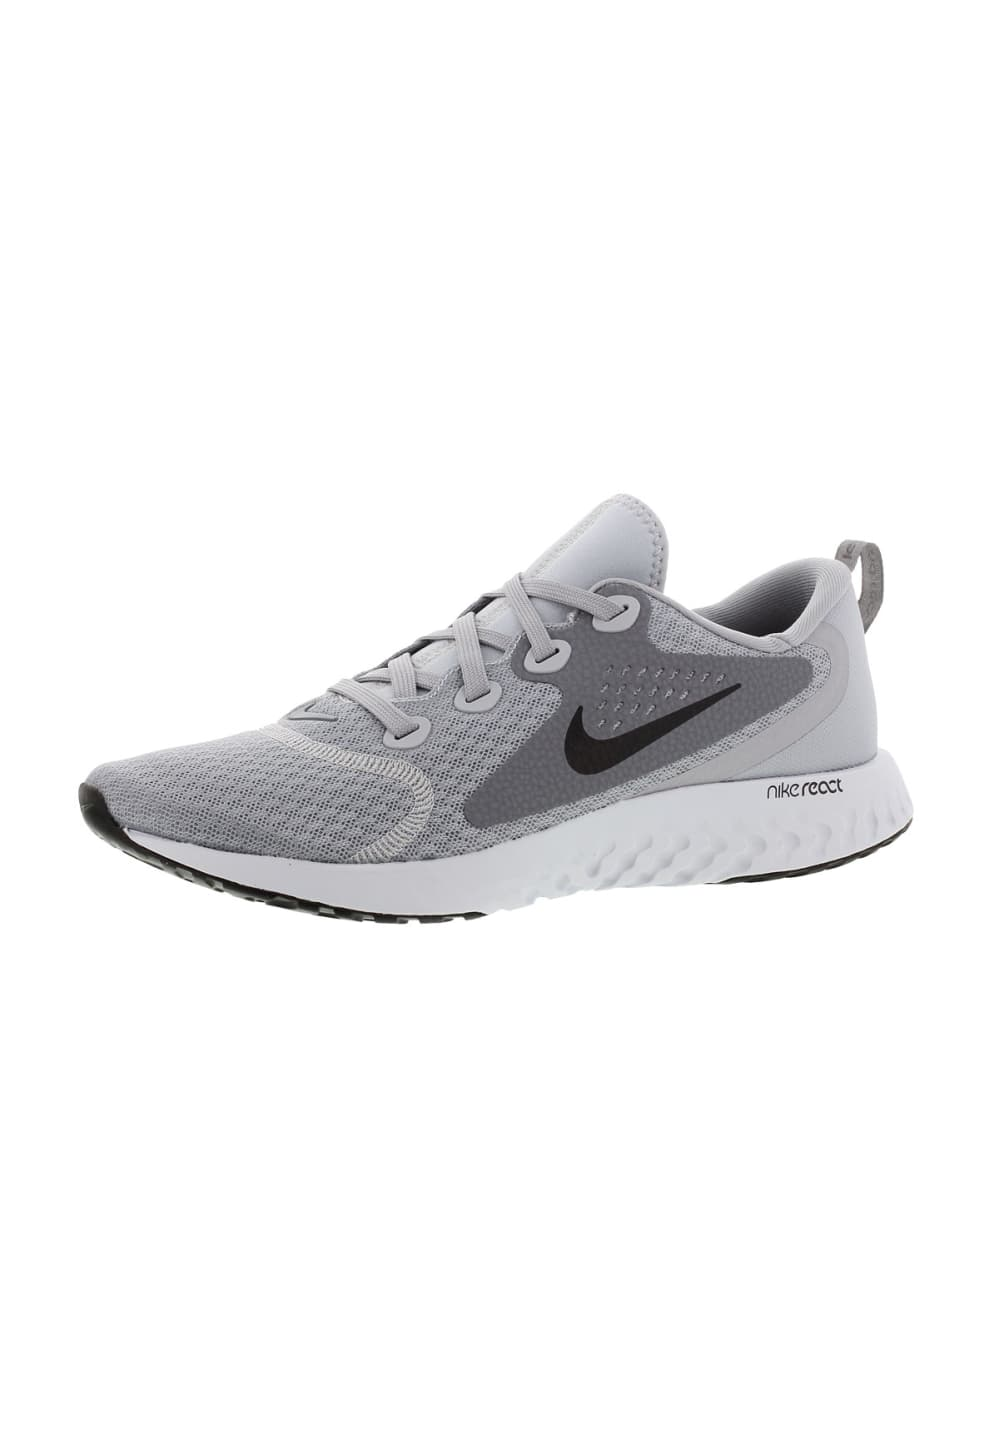 sports shoes fdc89 b7d51 Next. Nike. Legend React - Running shoes for Women